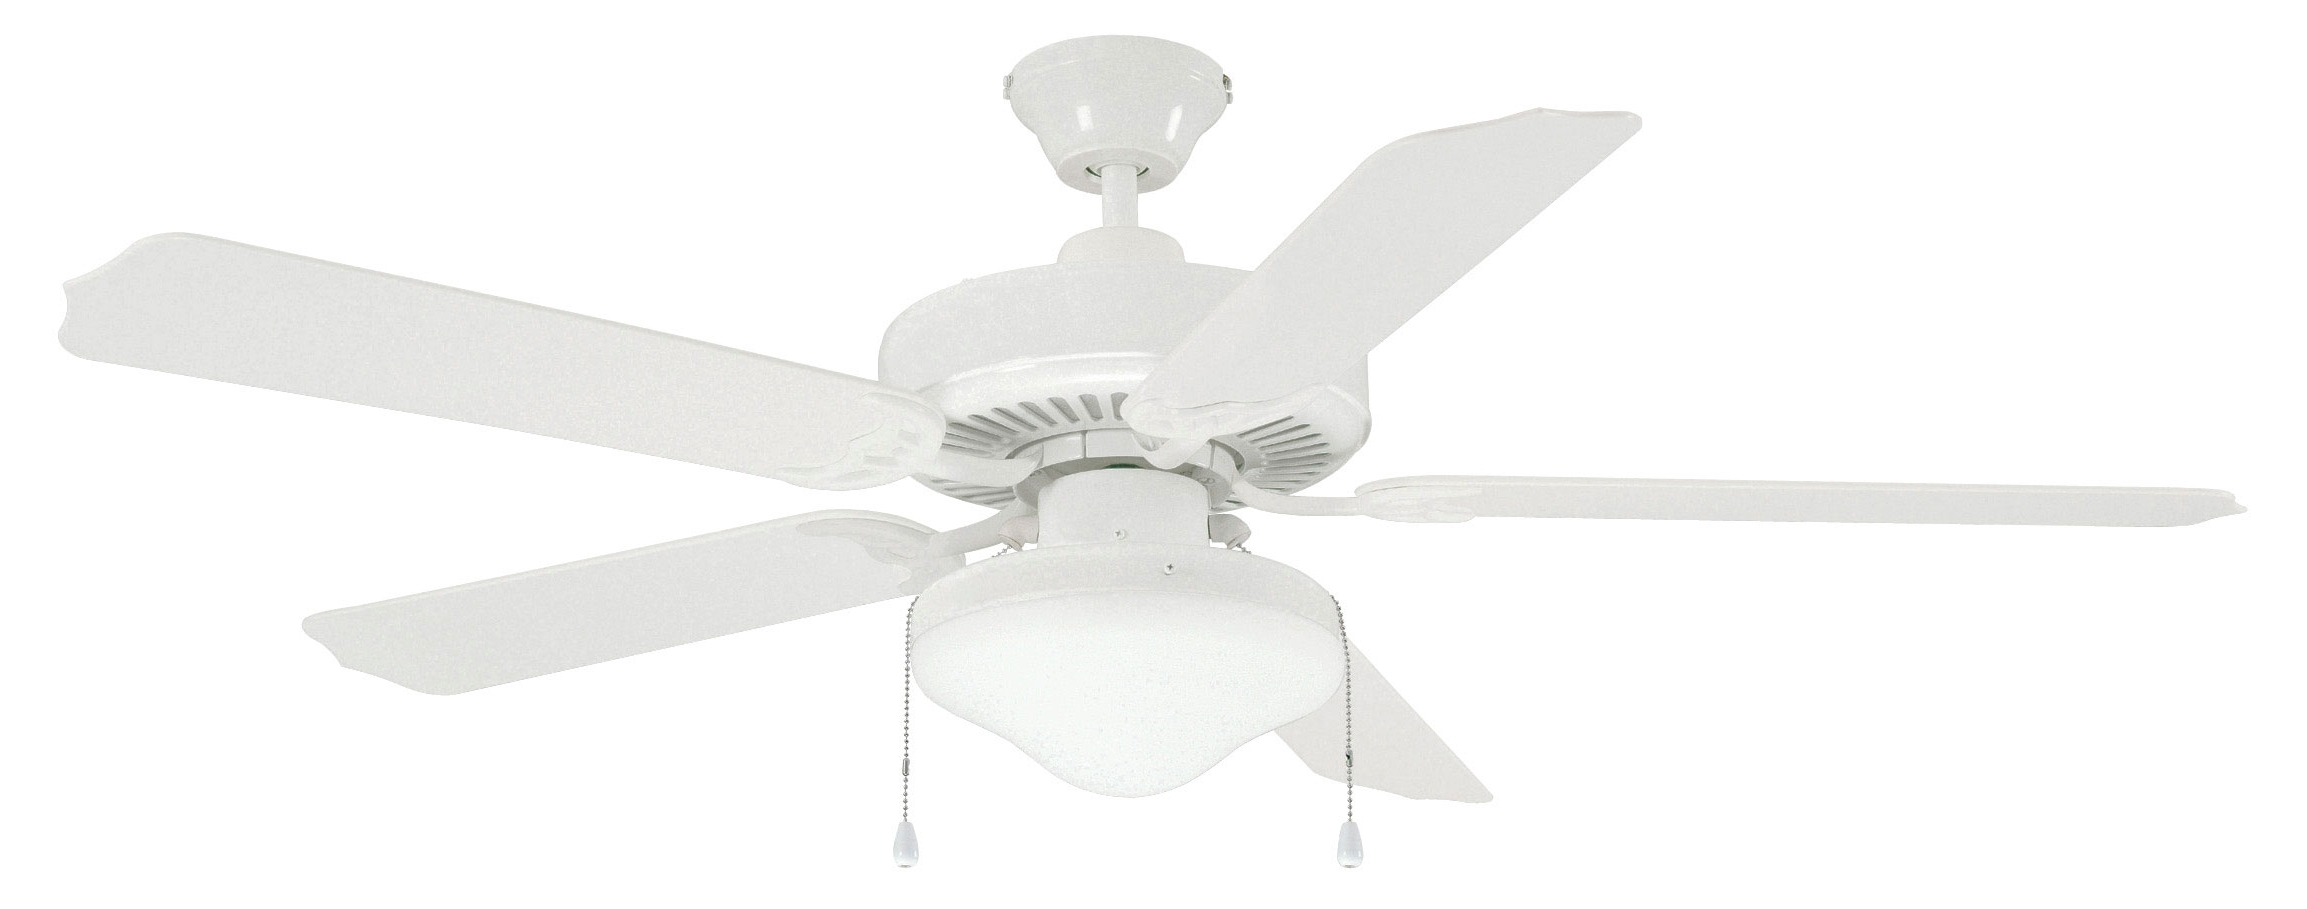 Best And Newest Ceiling Fans White Ceiling Fan With Light Cruise Outdoor Wet Rated Intended For White Outdoor Ceiling Fans With Lights (View 6 of 20)